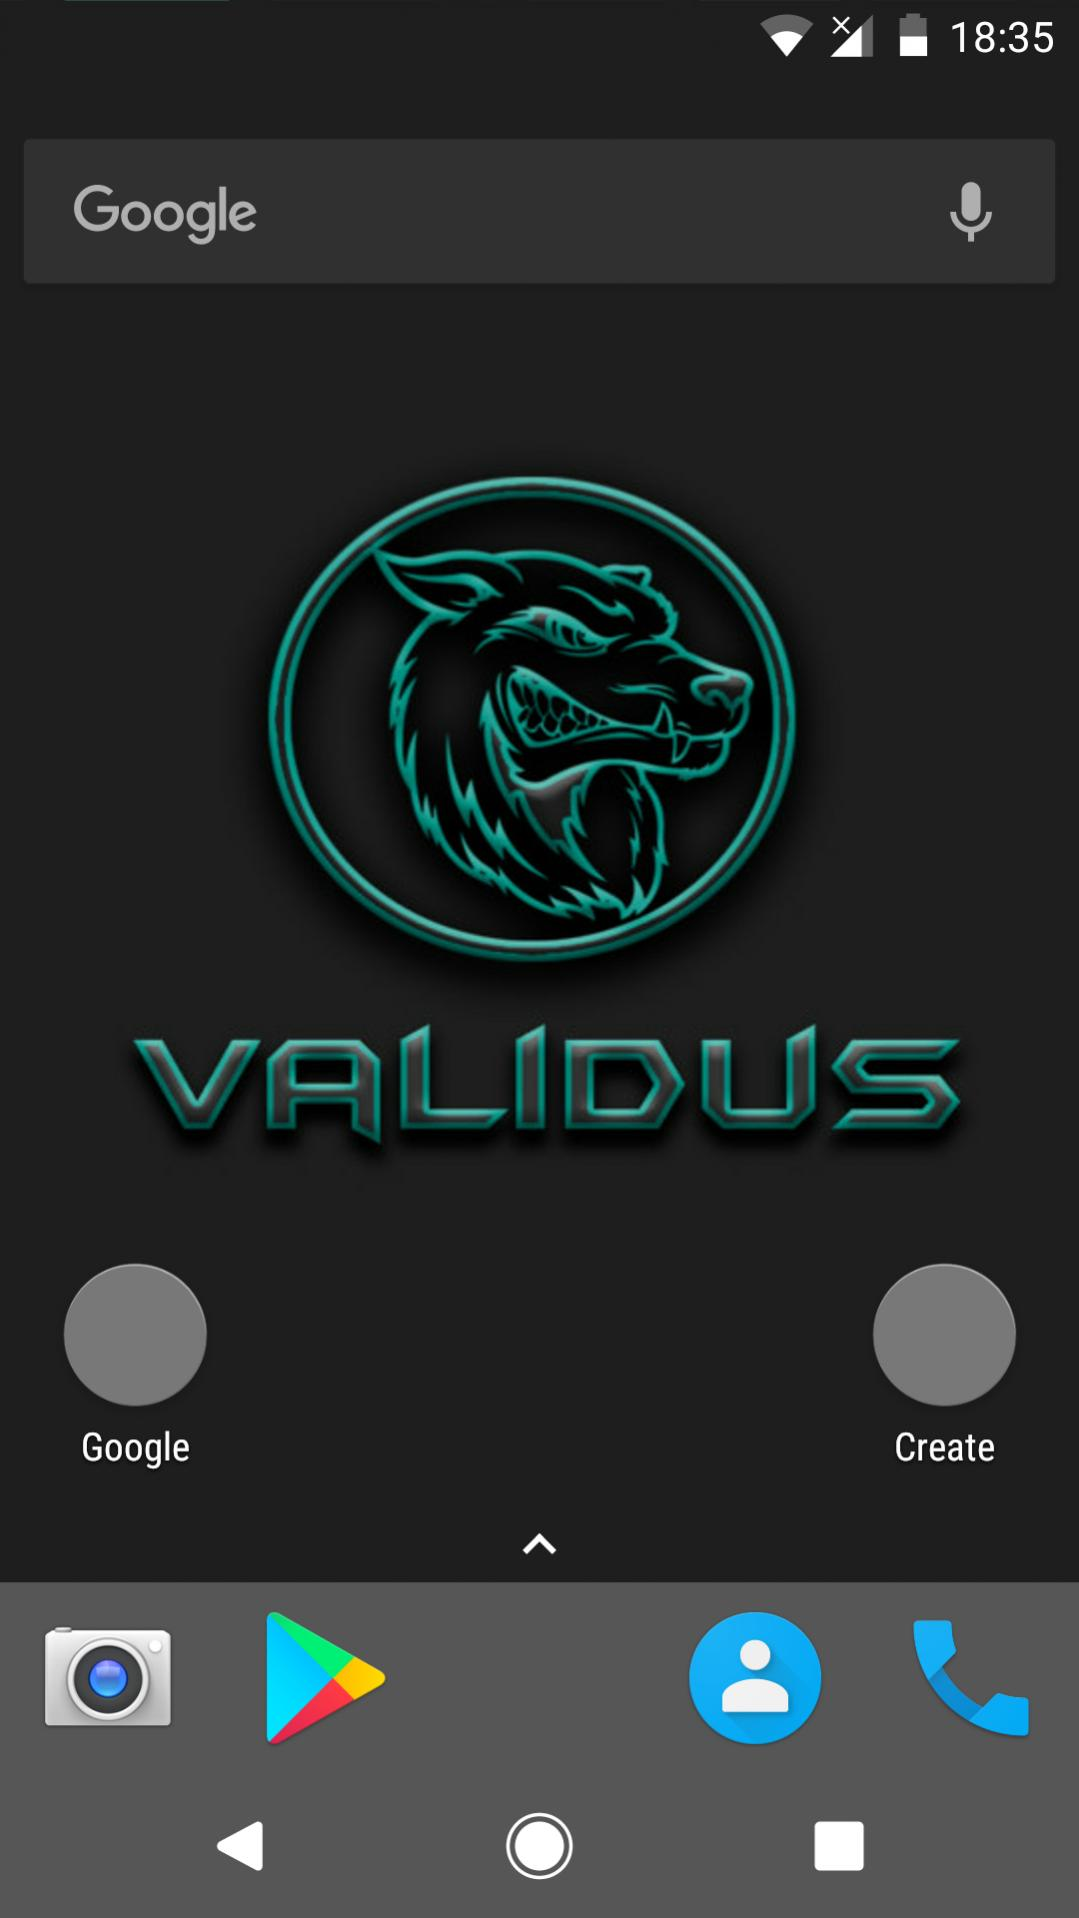 Validus 15.1 Android 7.1.2 Nougat ROM On Honor 5c 1 - Install Validus 15.1 Android 7.1.2 Nougat ROM On Honor 5c